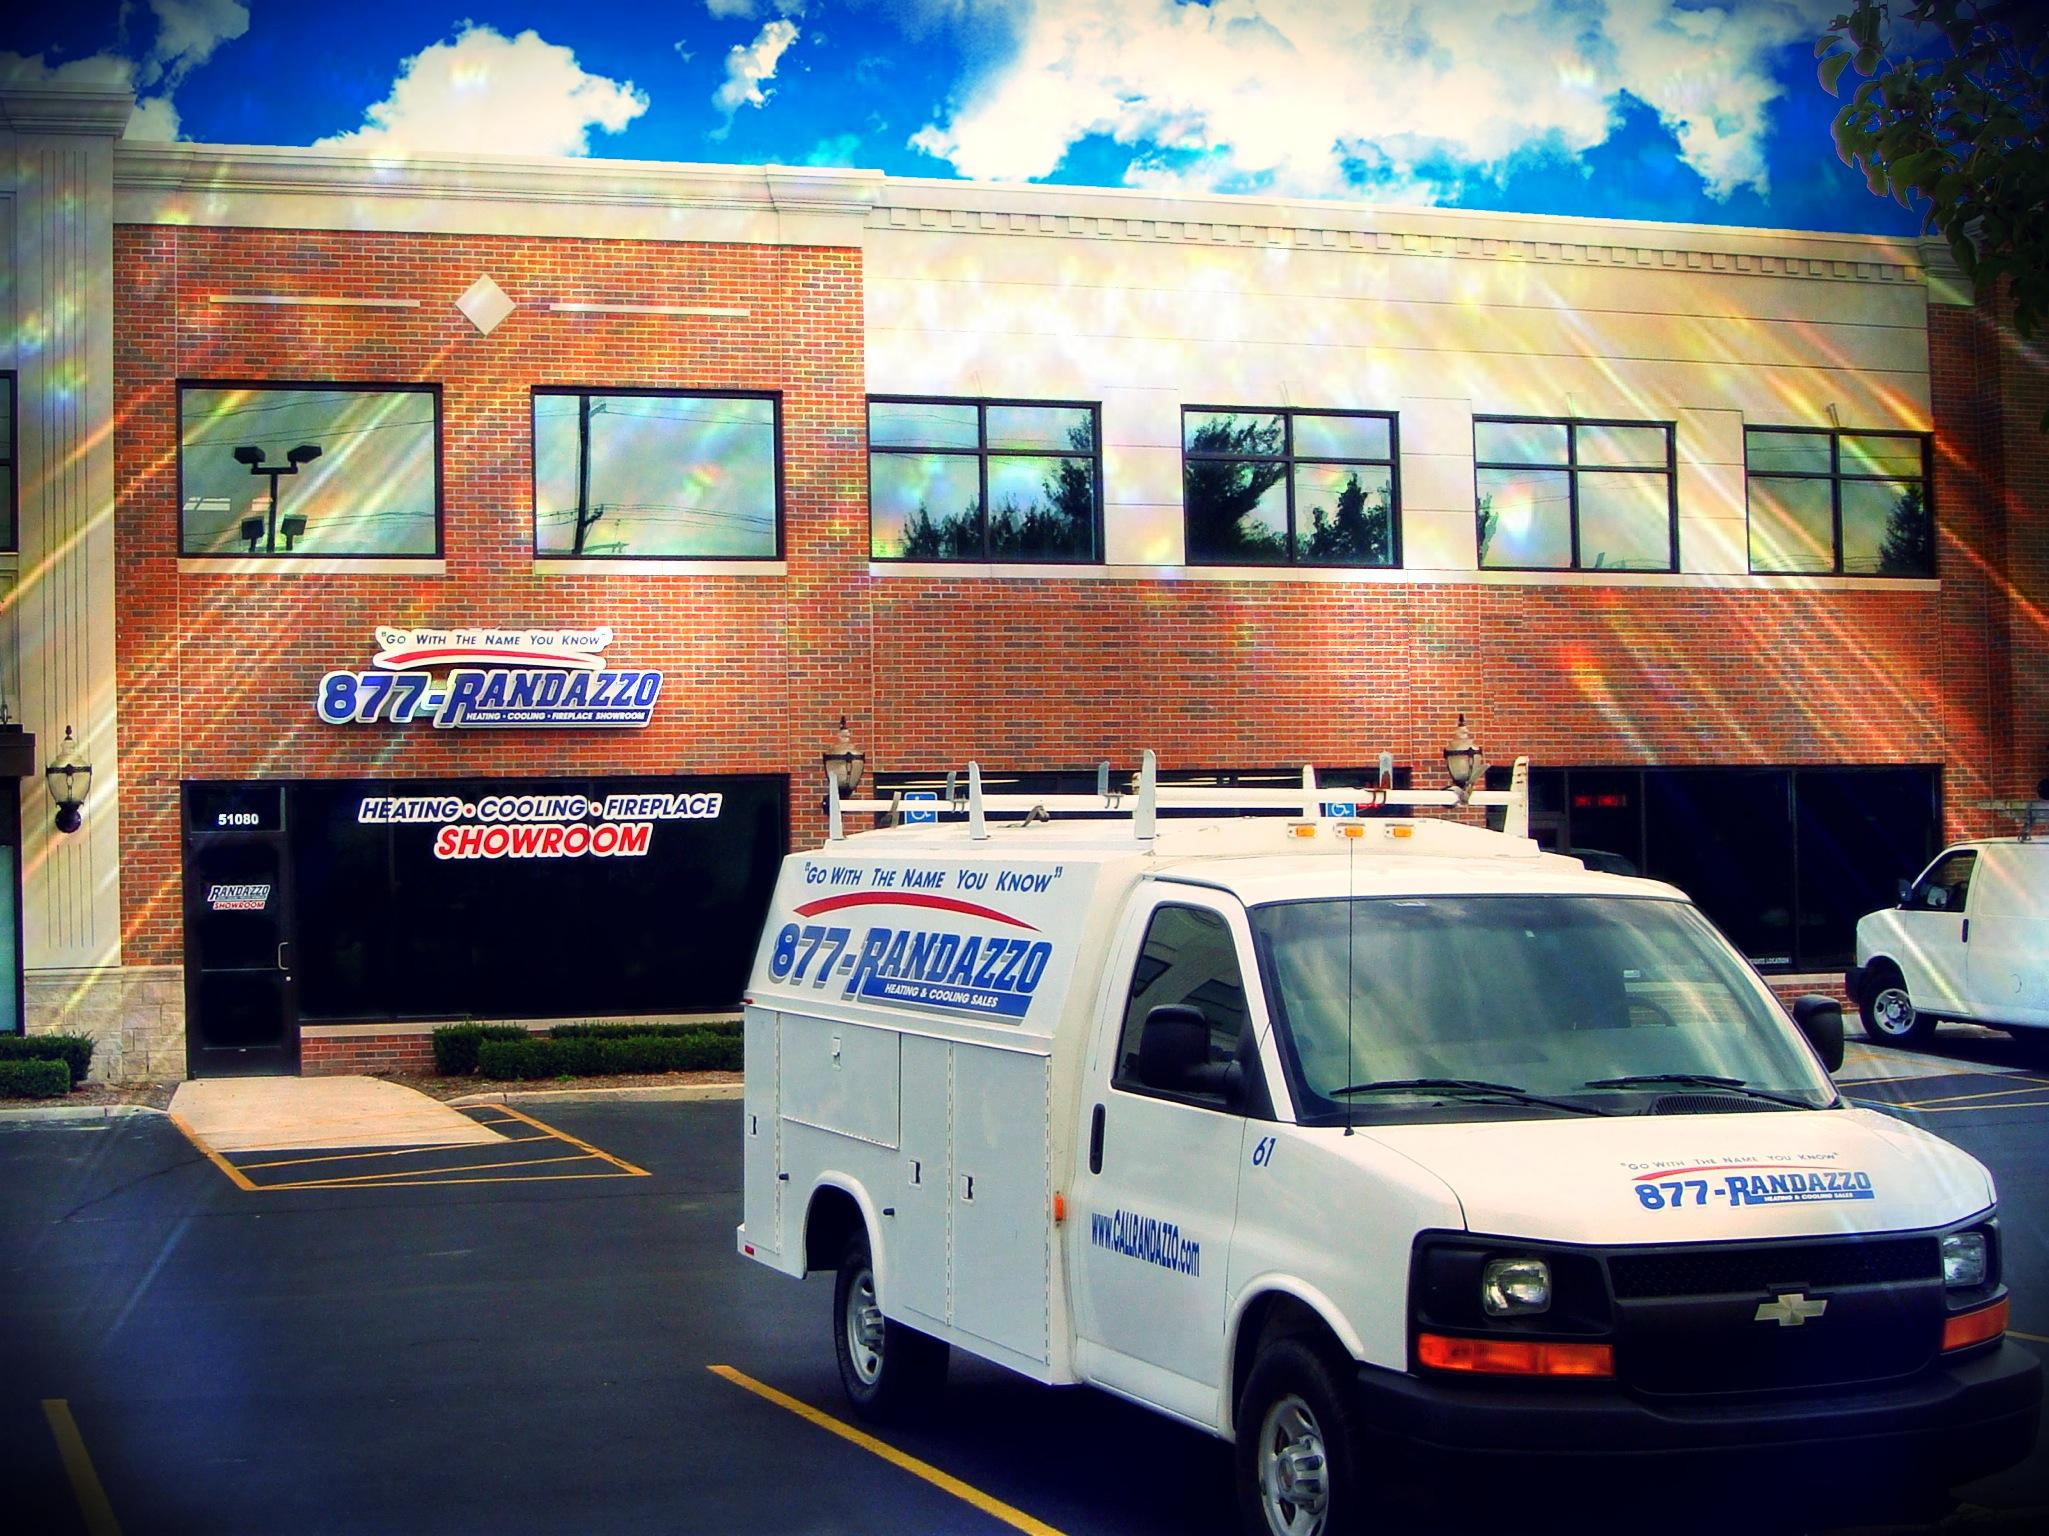 Randazzo Heating, Cooling & Fireplace Sales